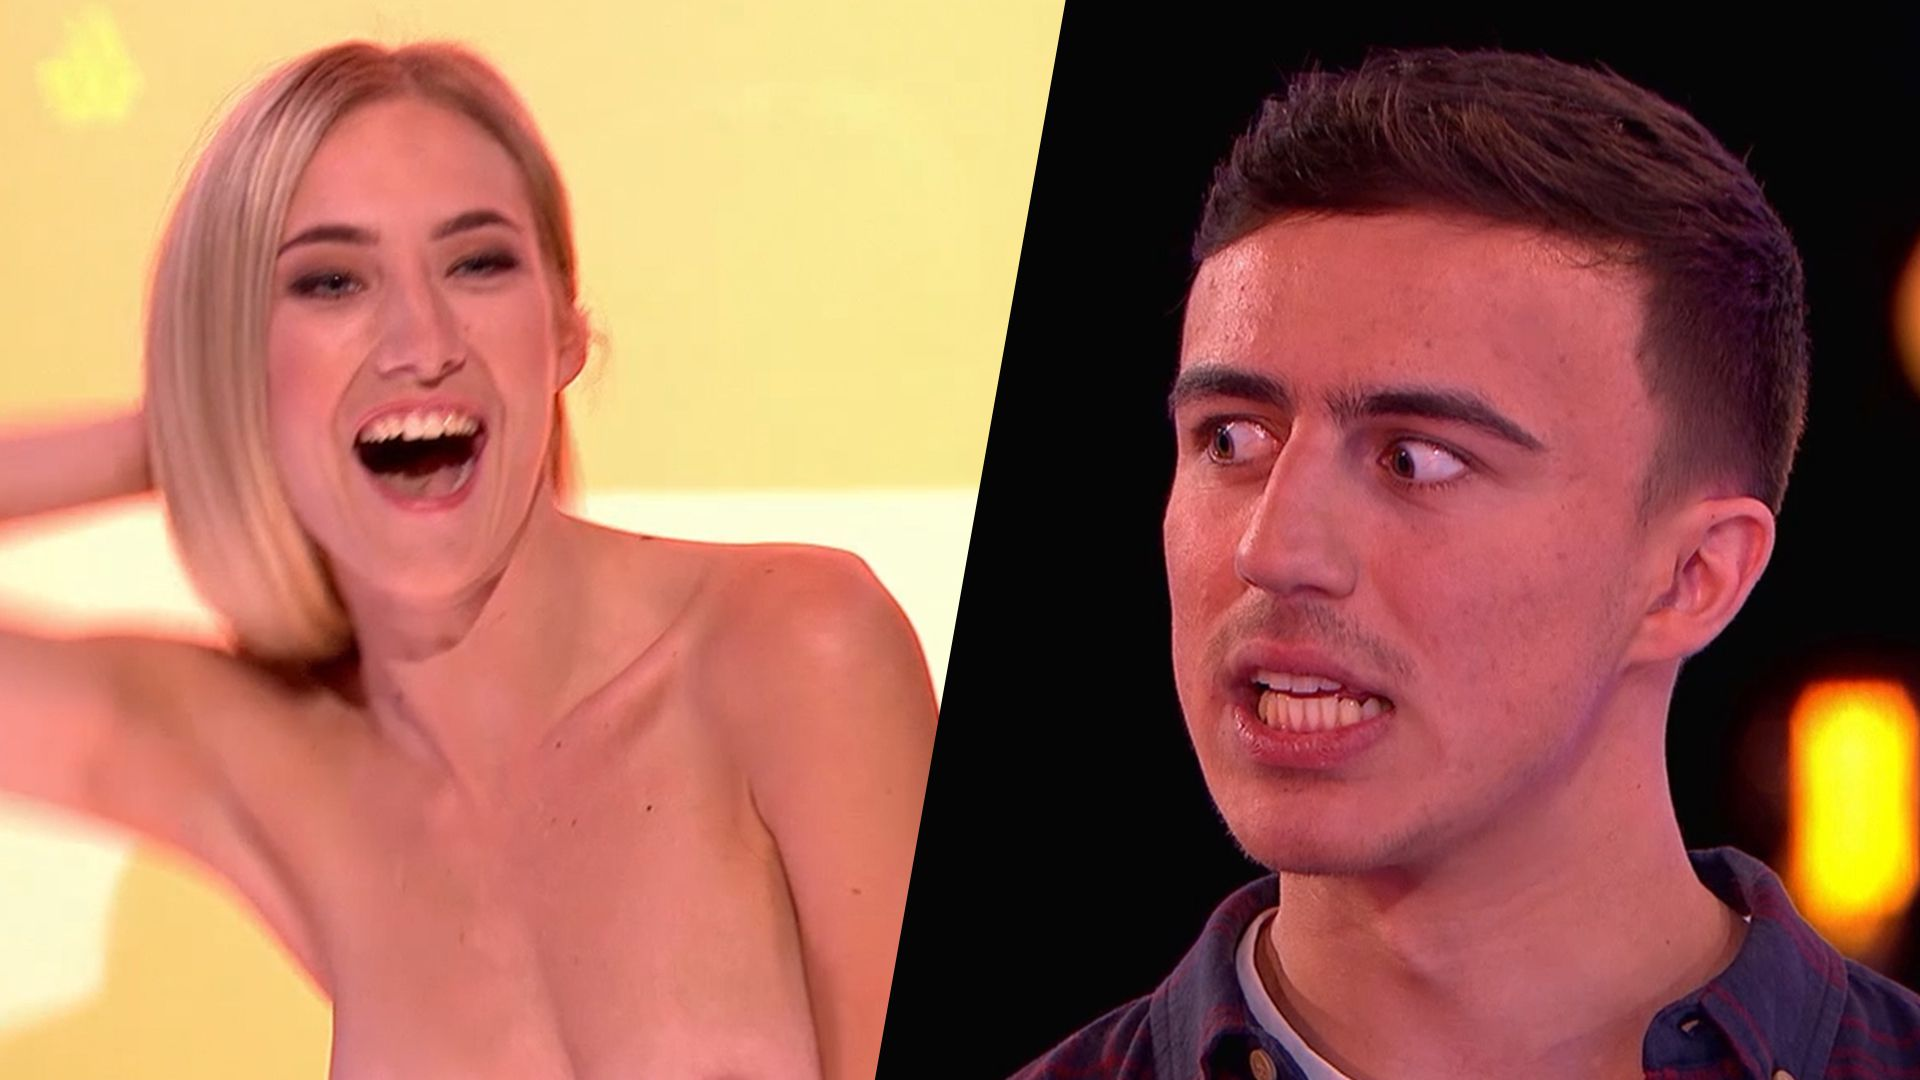 Naked Attraction Season 2 Episodes, Video On Demand